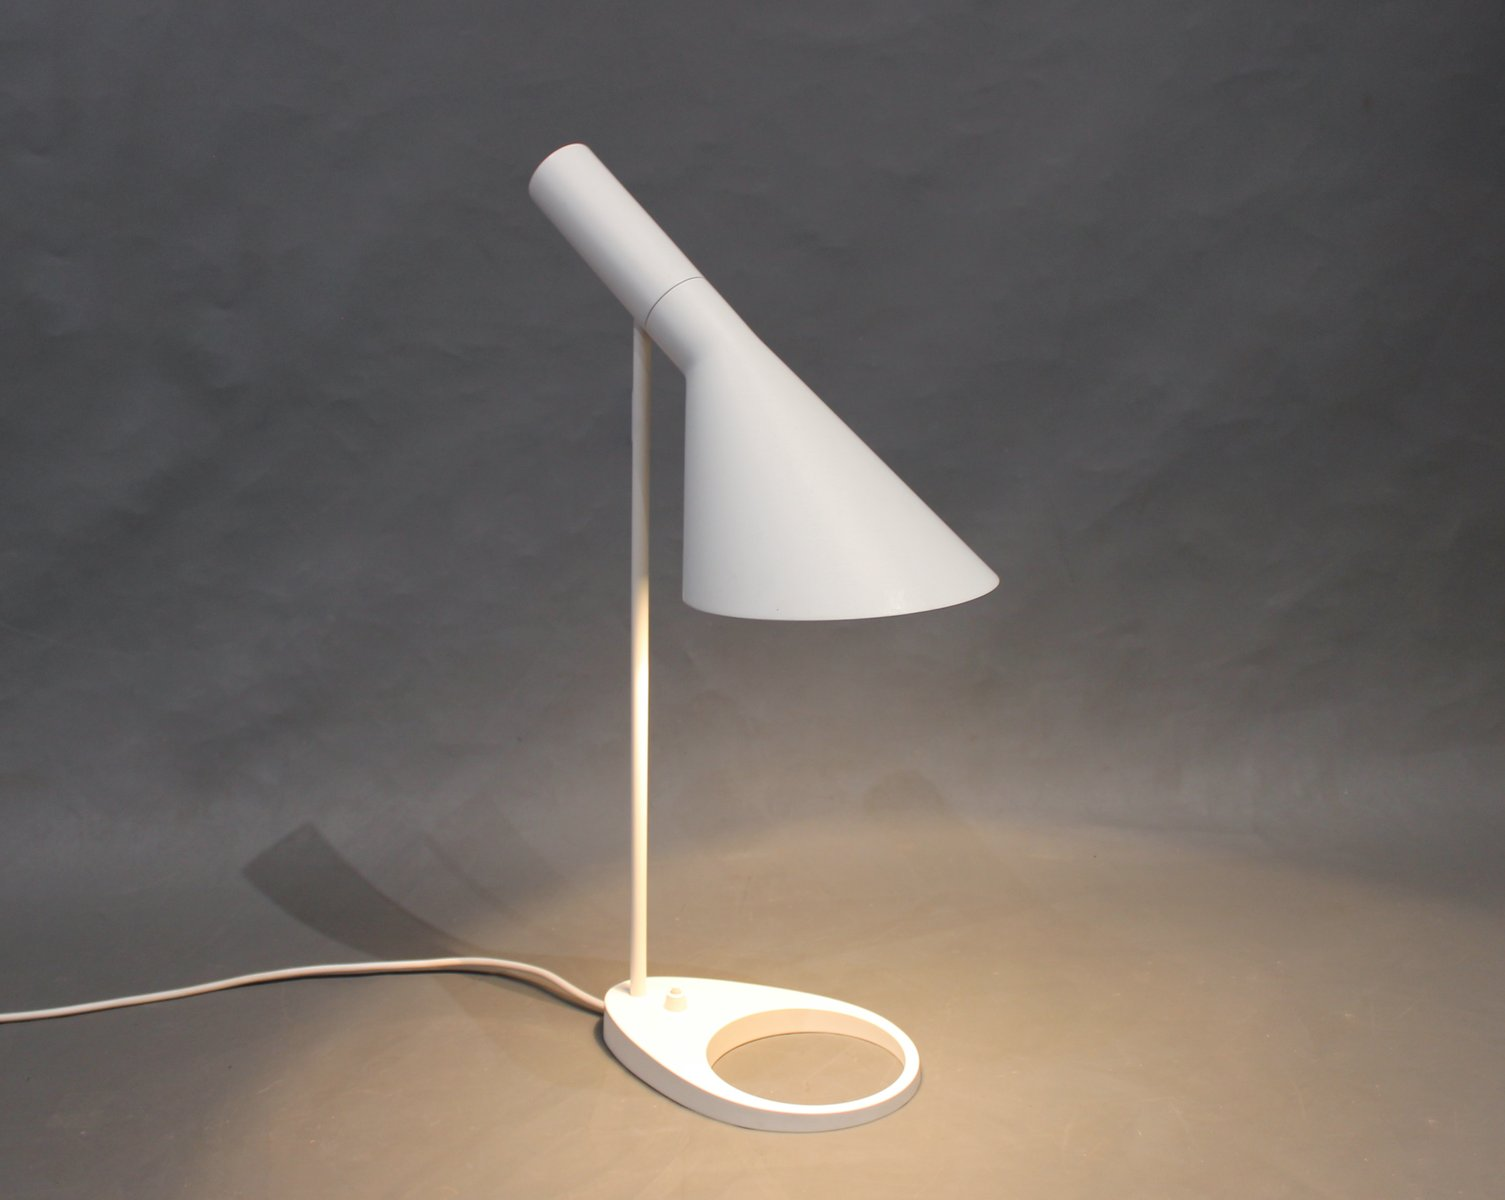 White table lamp by arne jacobsen for louis poulsen 1960s for sale white table lamp by arne jacobsen for louis poulsen 1960s mozeypictures Choice Image